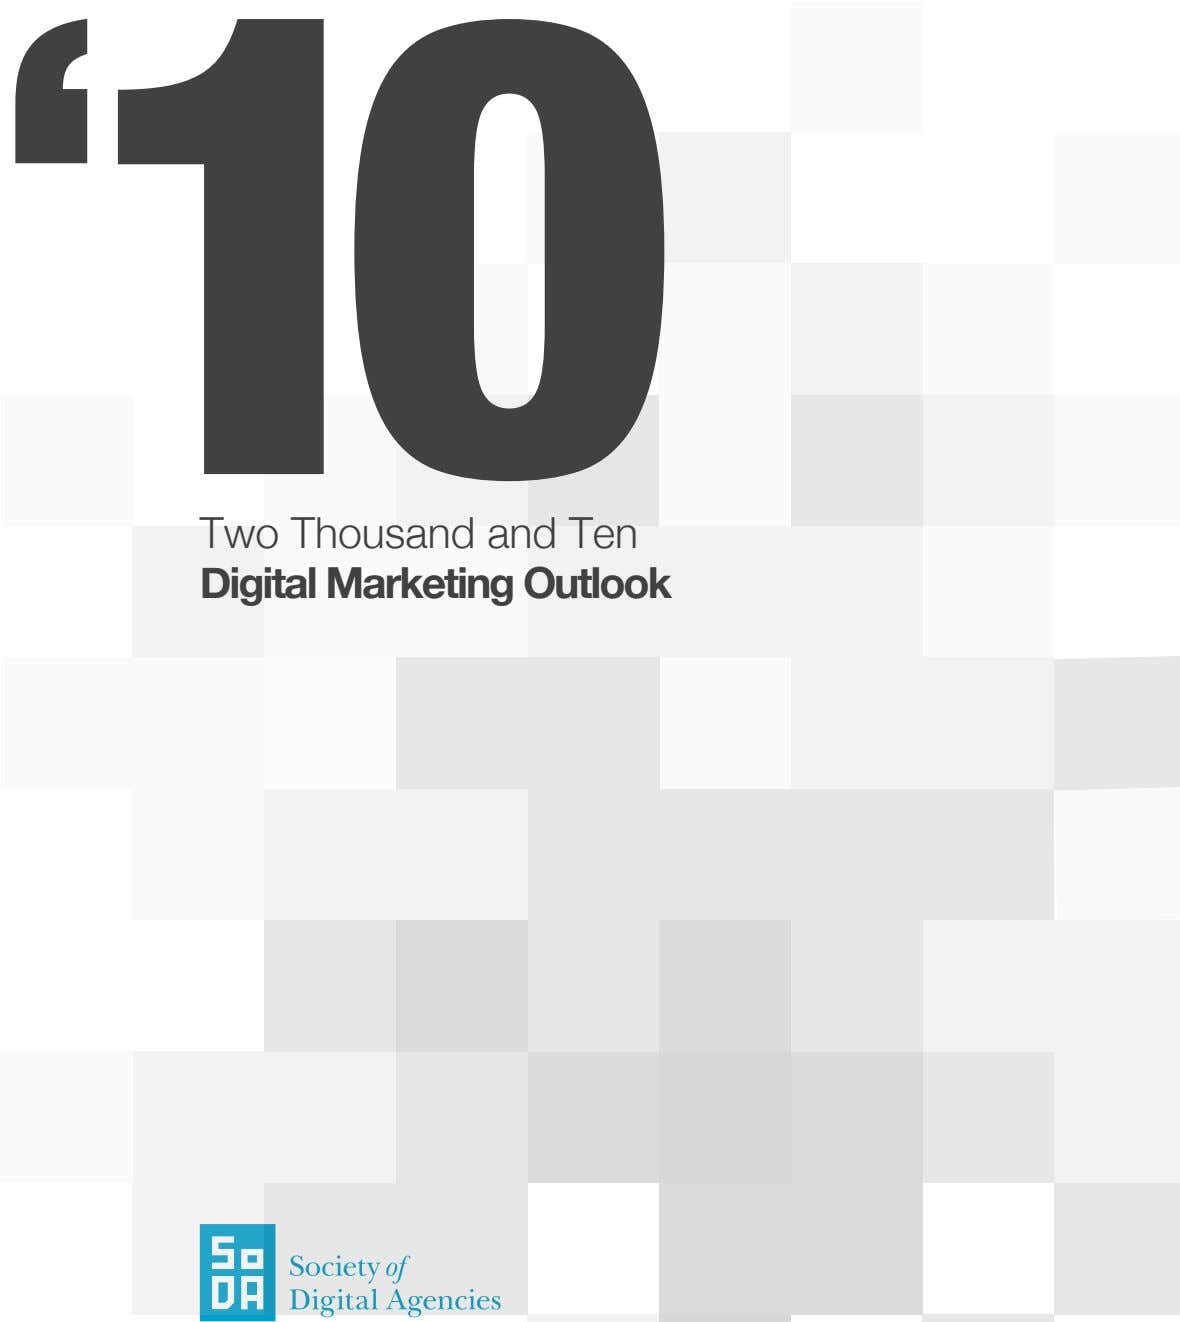 Two Thousand and Ten Digital Marketing Outlook